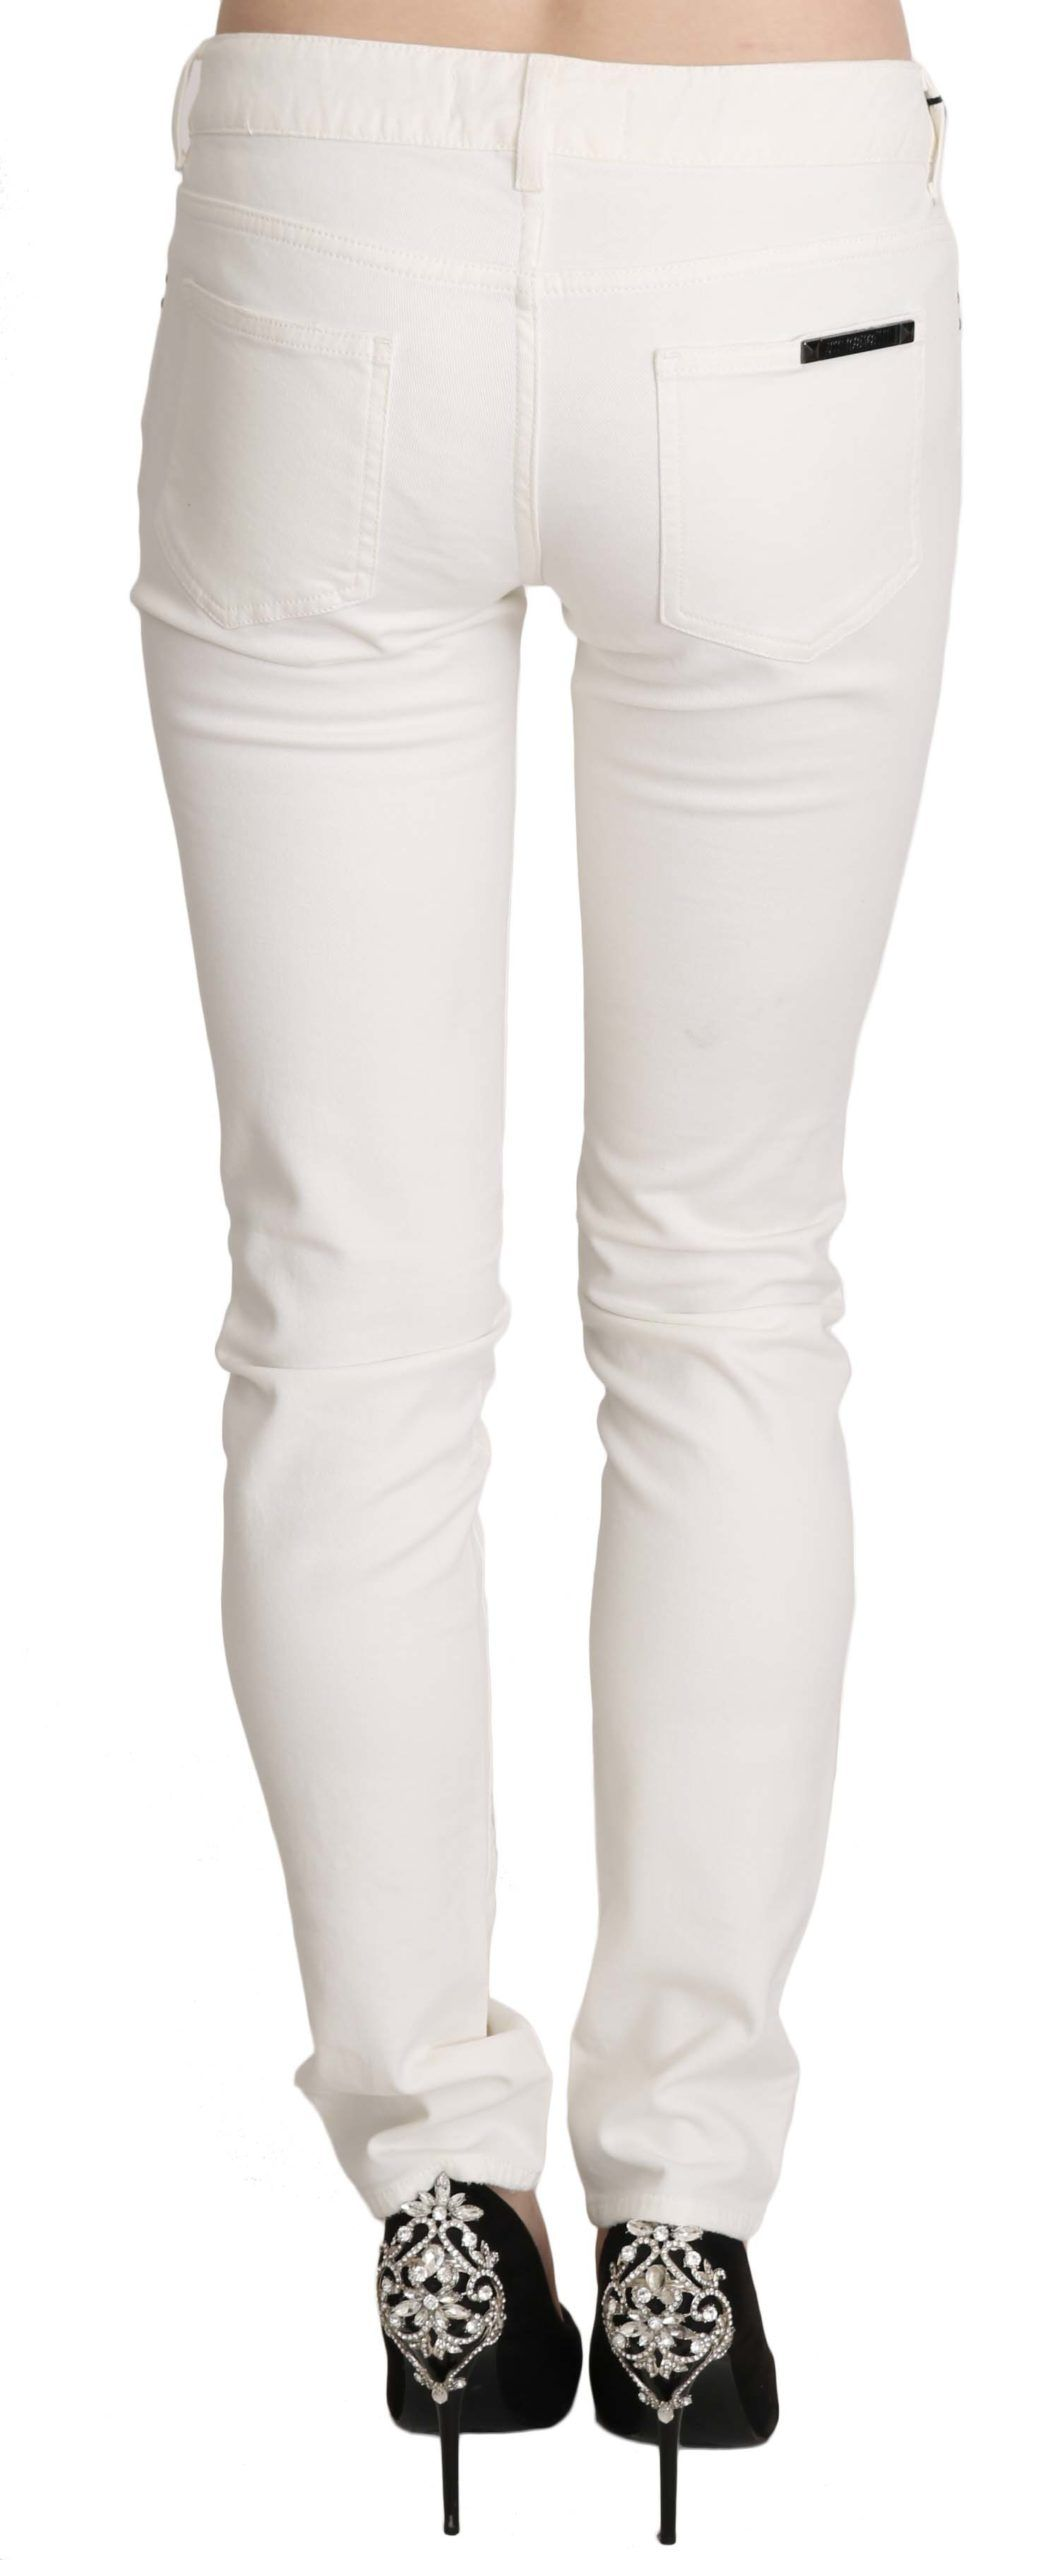 Cavalli White Cotton Low Waist Skinny Denim Pants Jeans